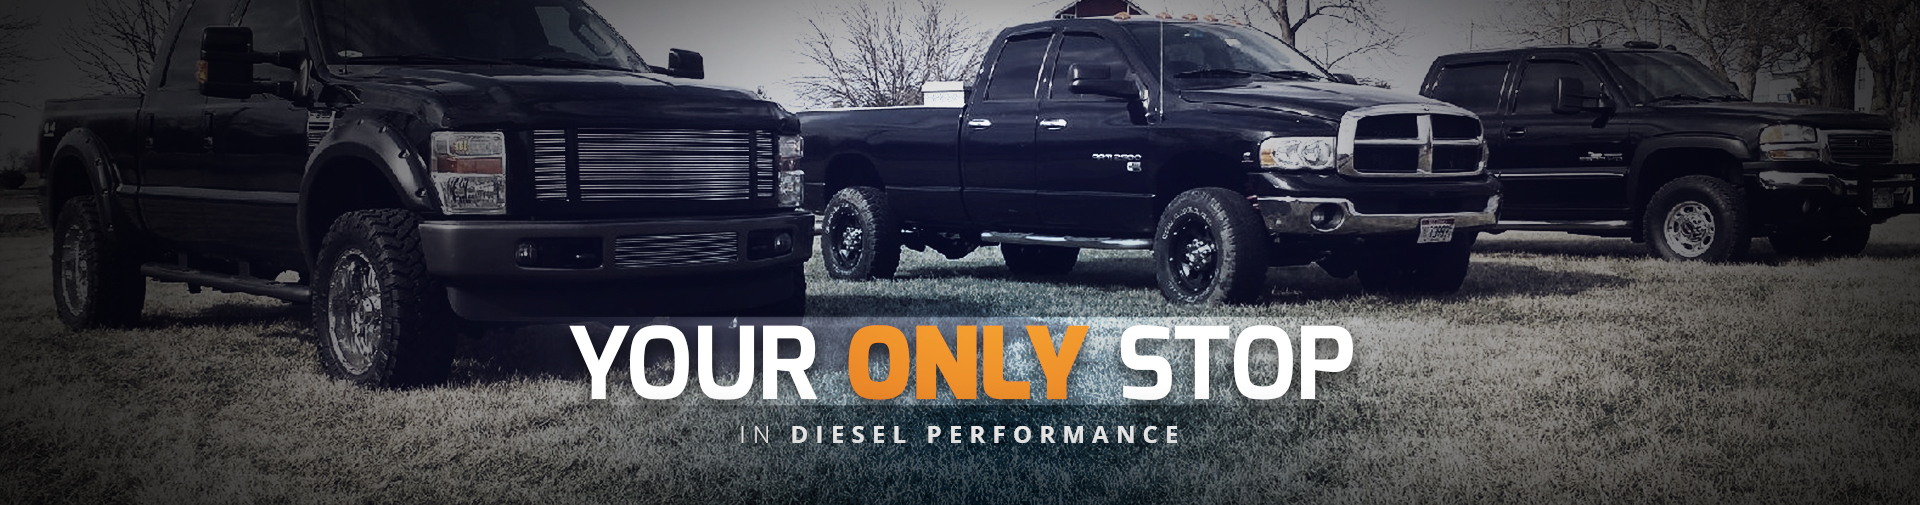 When going with Temple Diesel Performance for your diesel truck